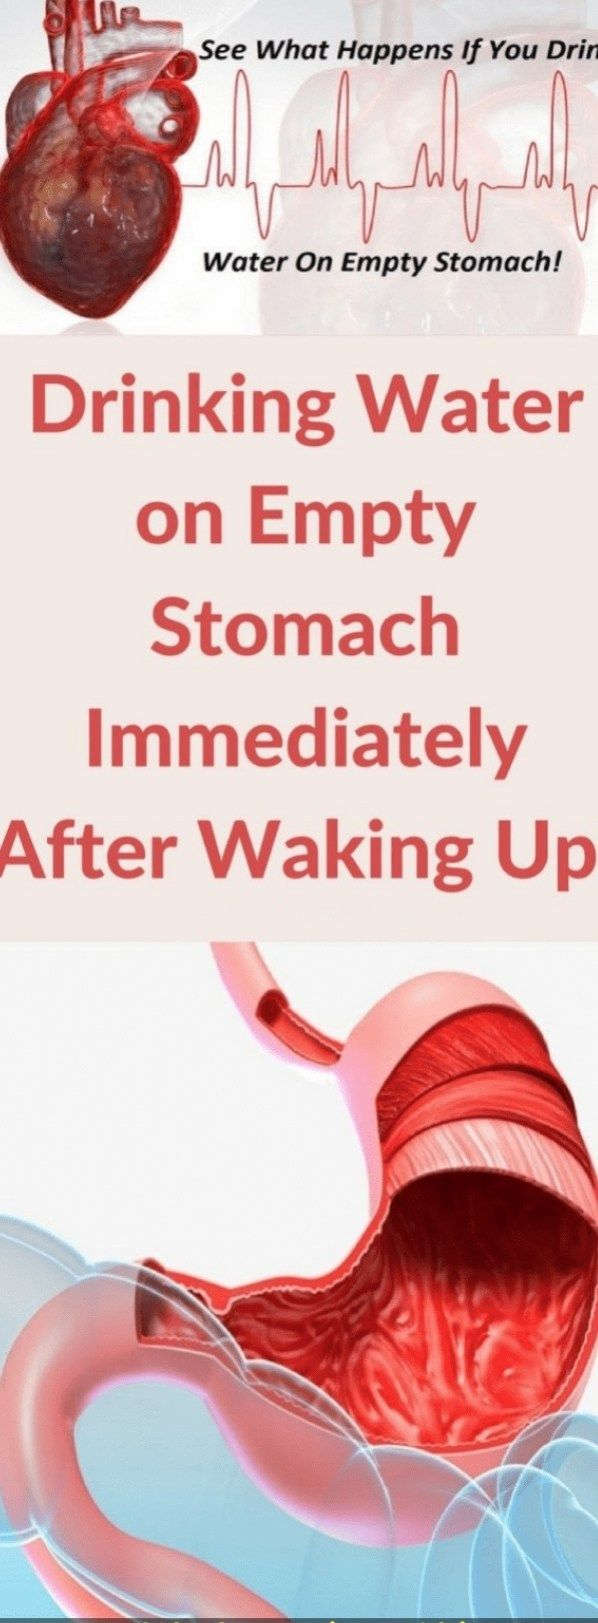 Drinking Water On Empty Stomach Immediately After Waking Up Healthy Beat Health Drinking Water Health Benefits